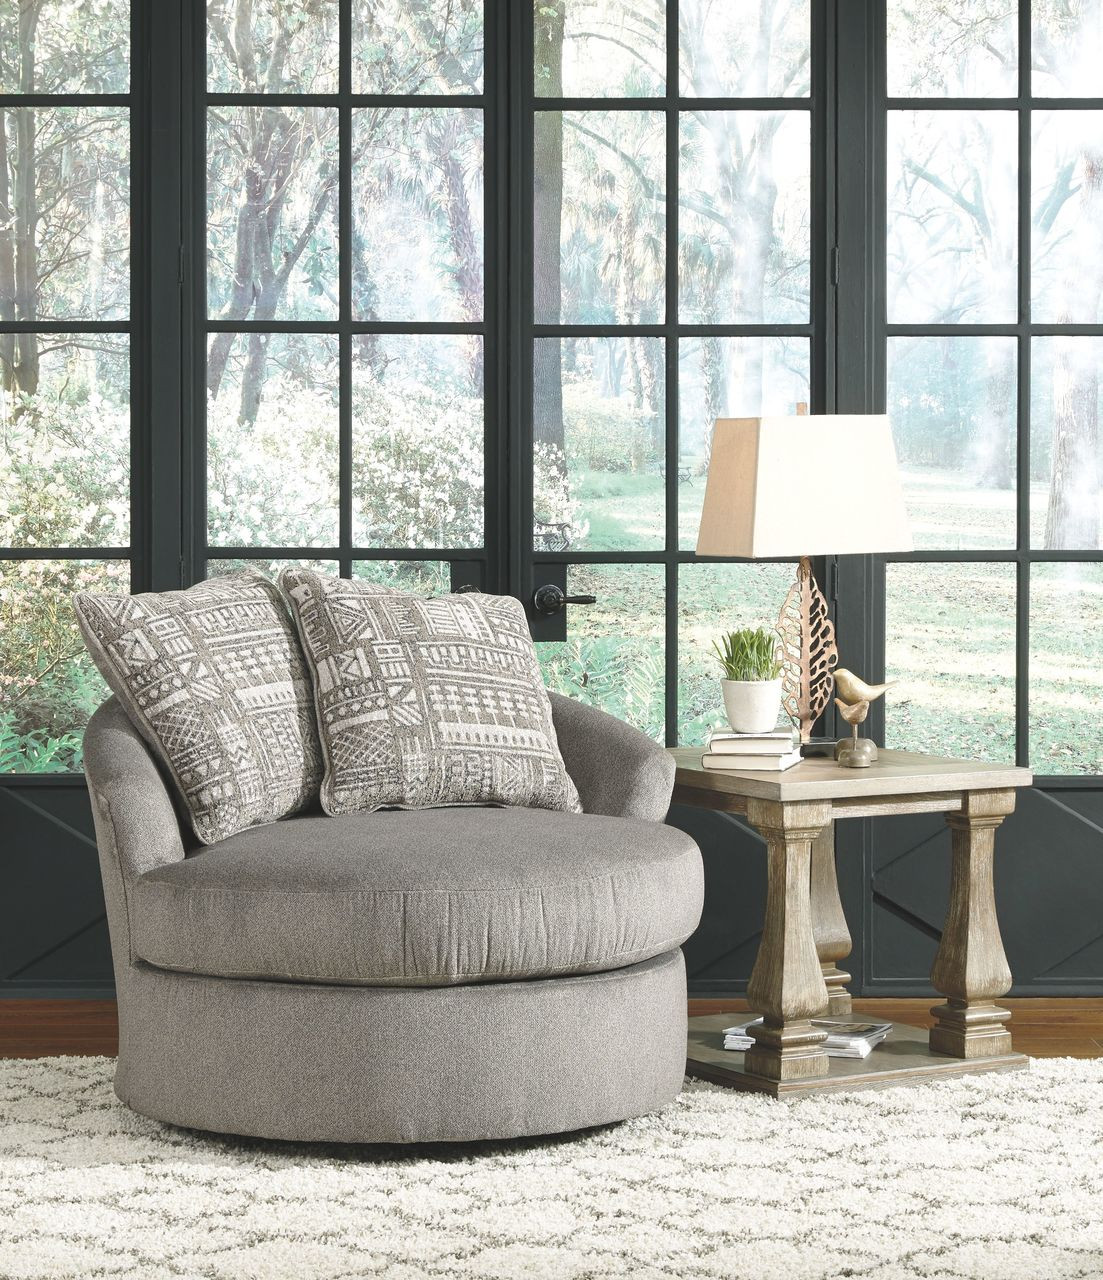 Rent A Center Accent Chairs.Soletren Ash Swivel Accent Chair